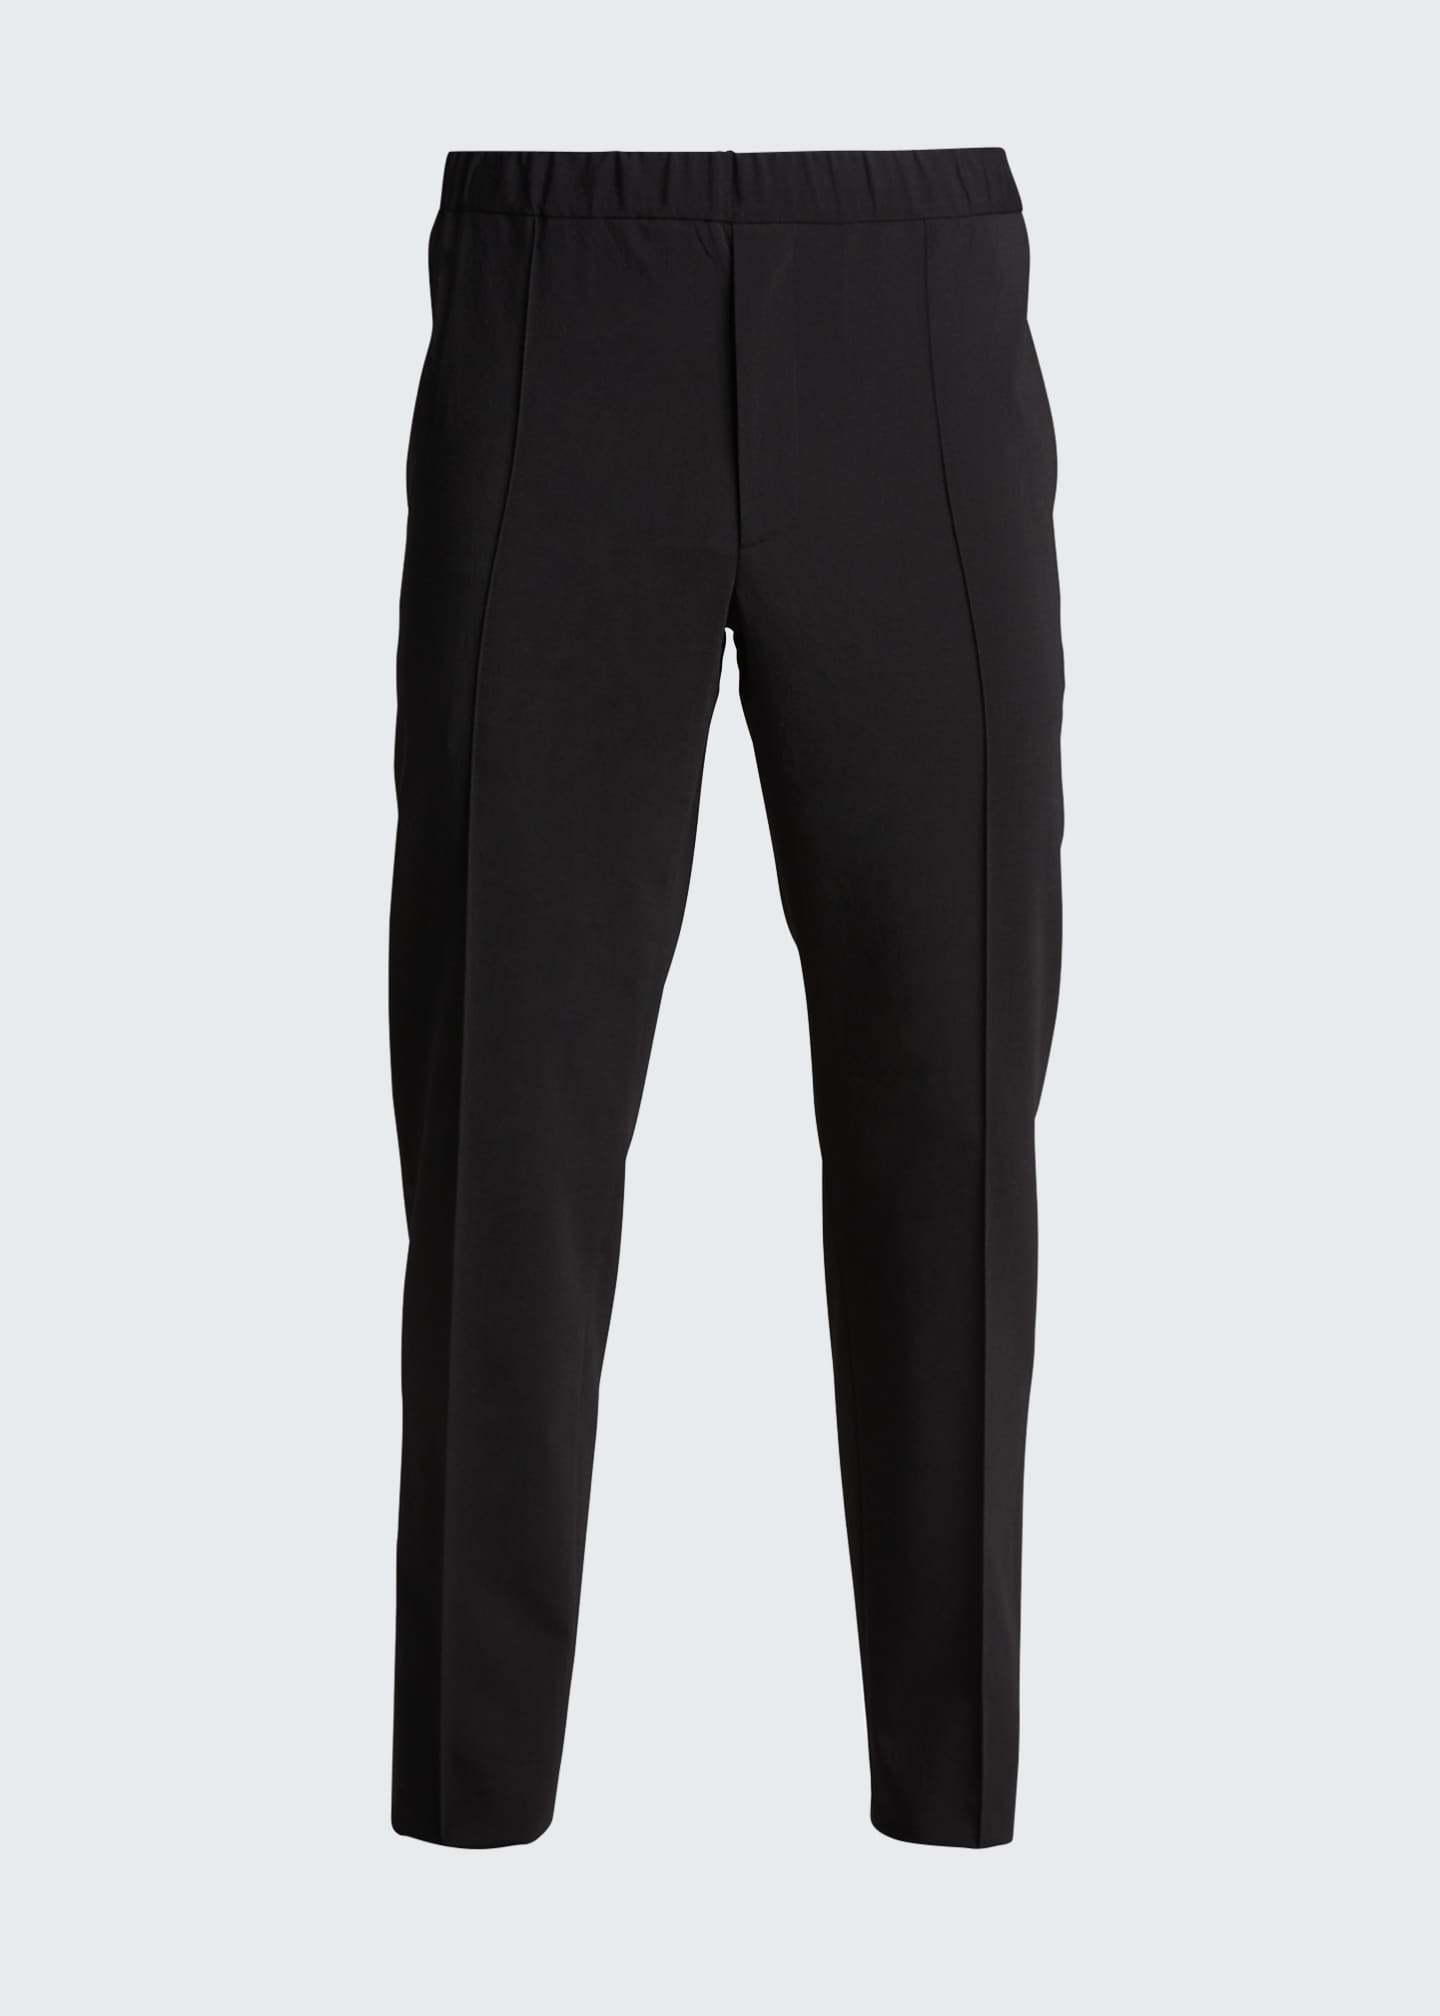 Image 5 of 5: Men's Crushed Suiting Pull-On Pants